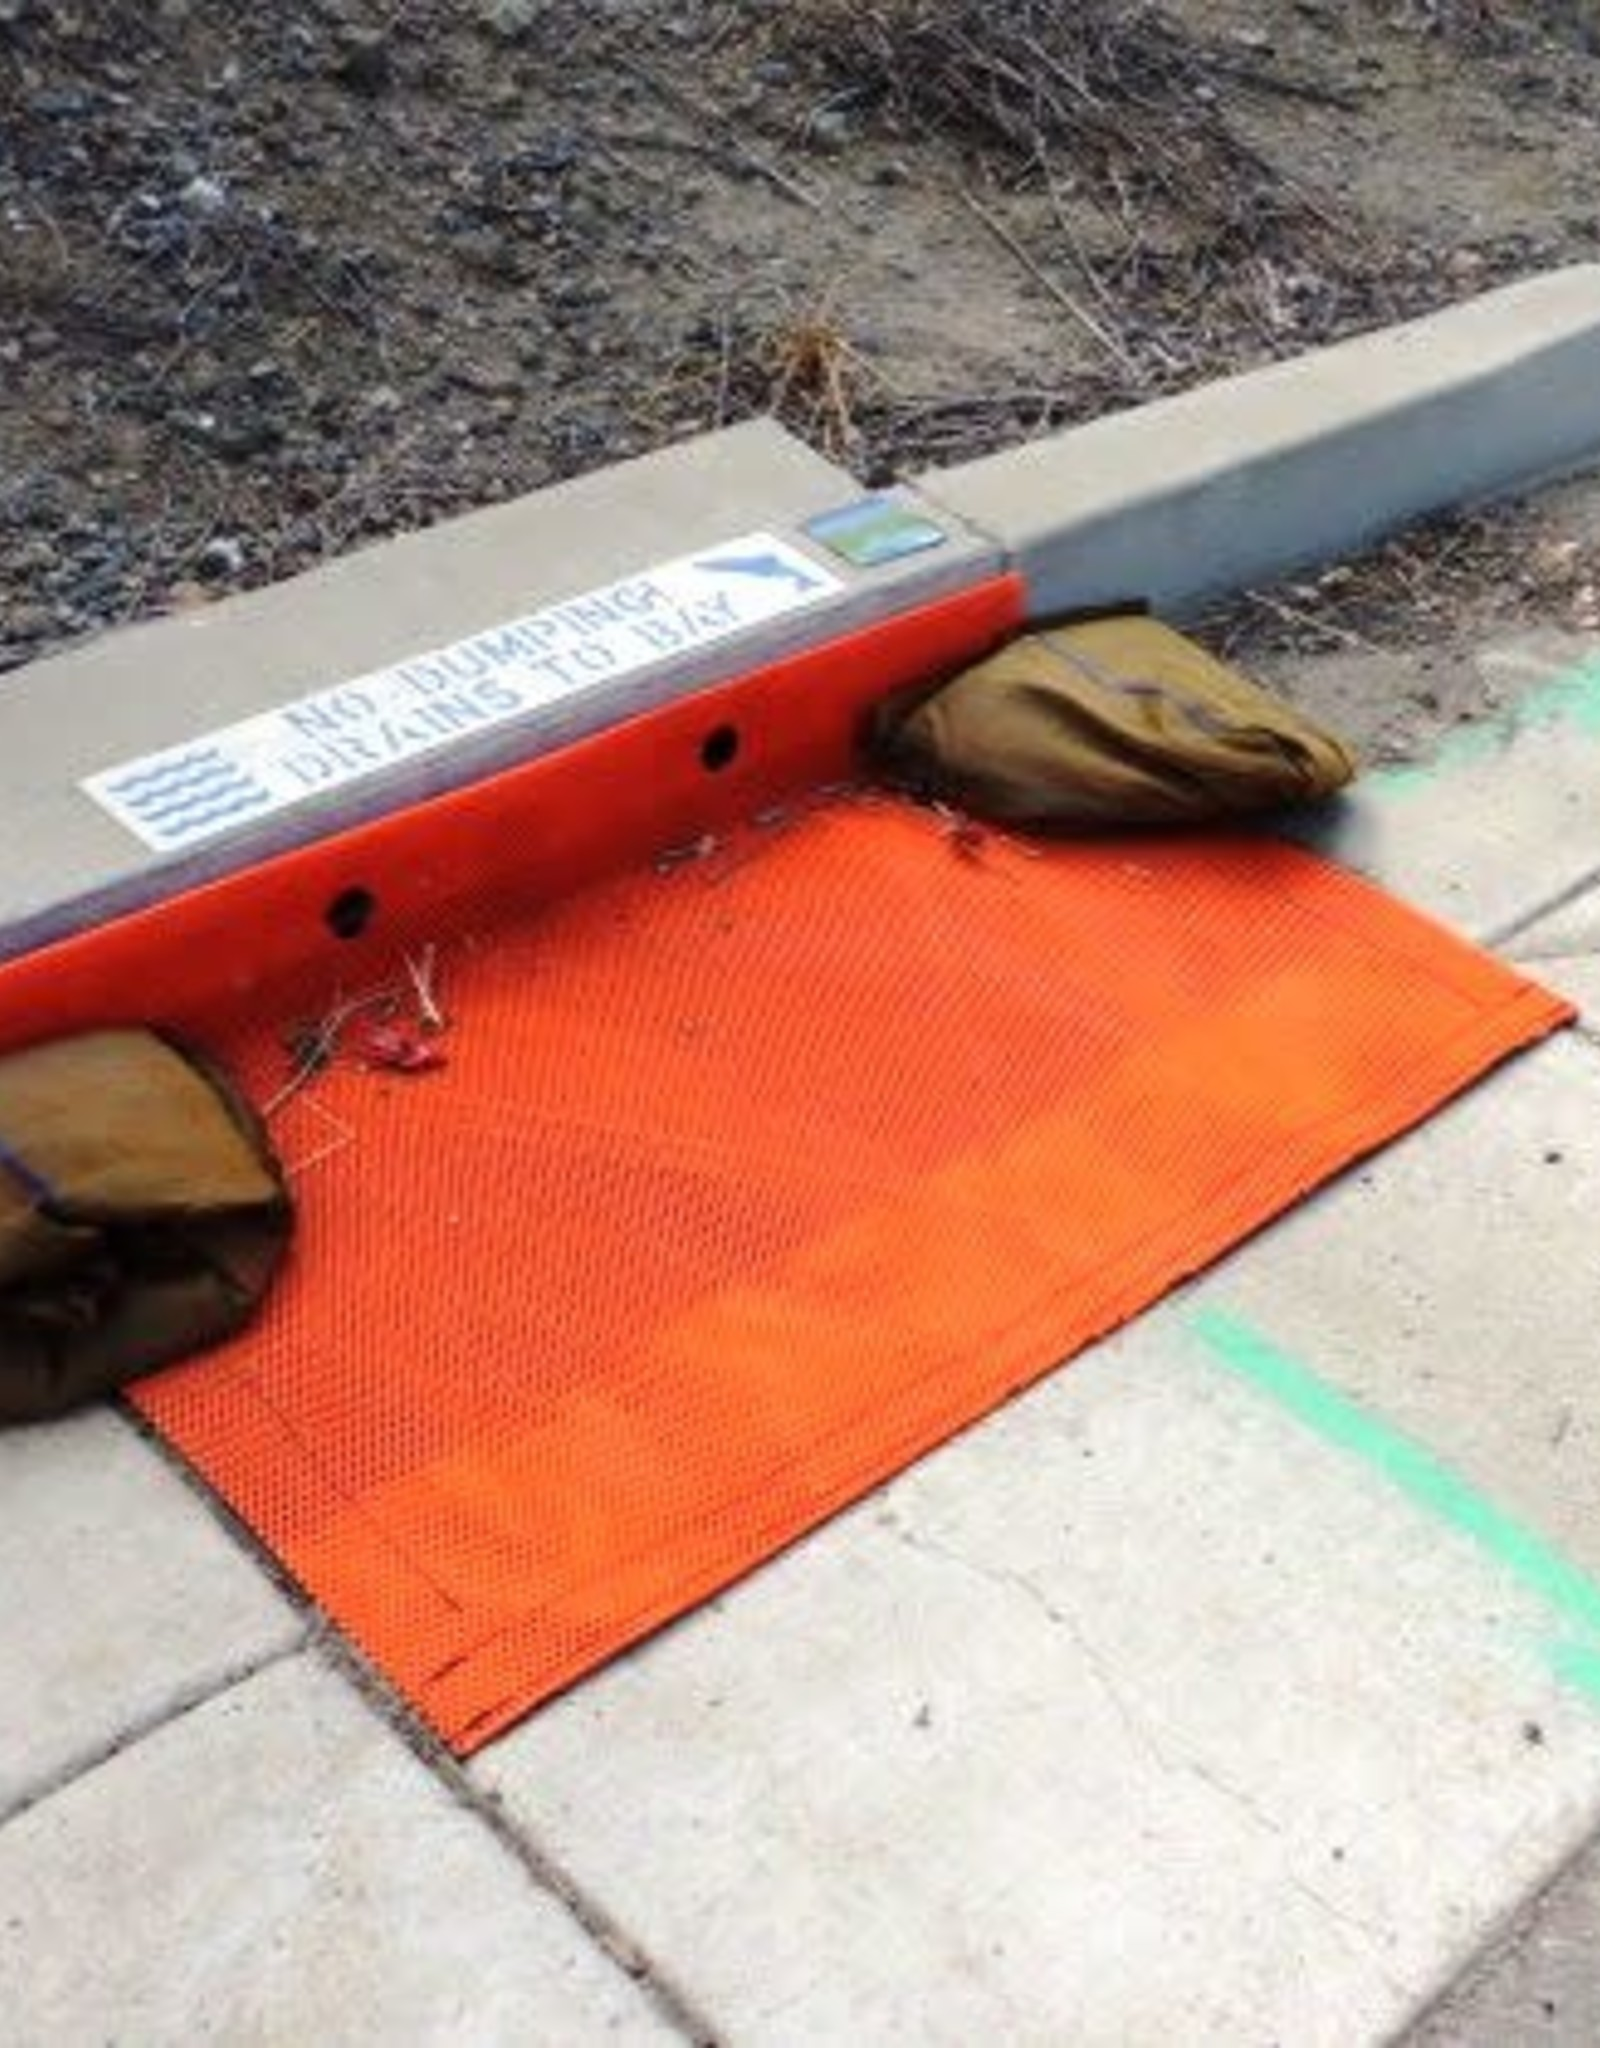 ERTEC Combo Guard - Protection for Combination Curb & Grate Inlets